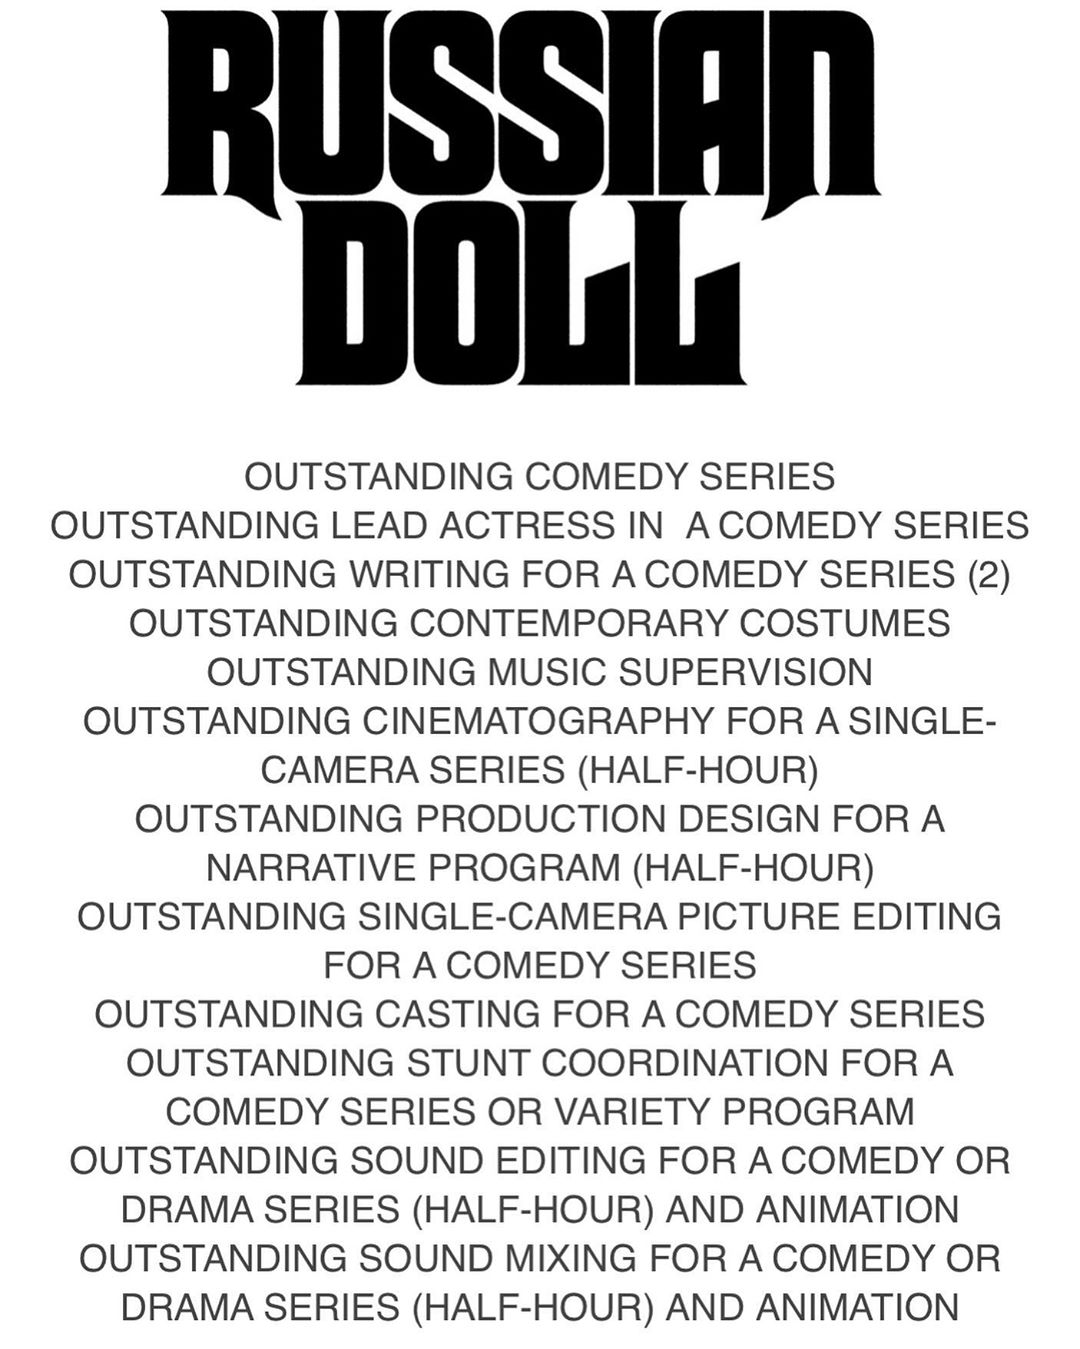 Russian doll Emmy nominations